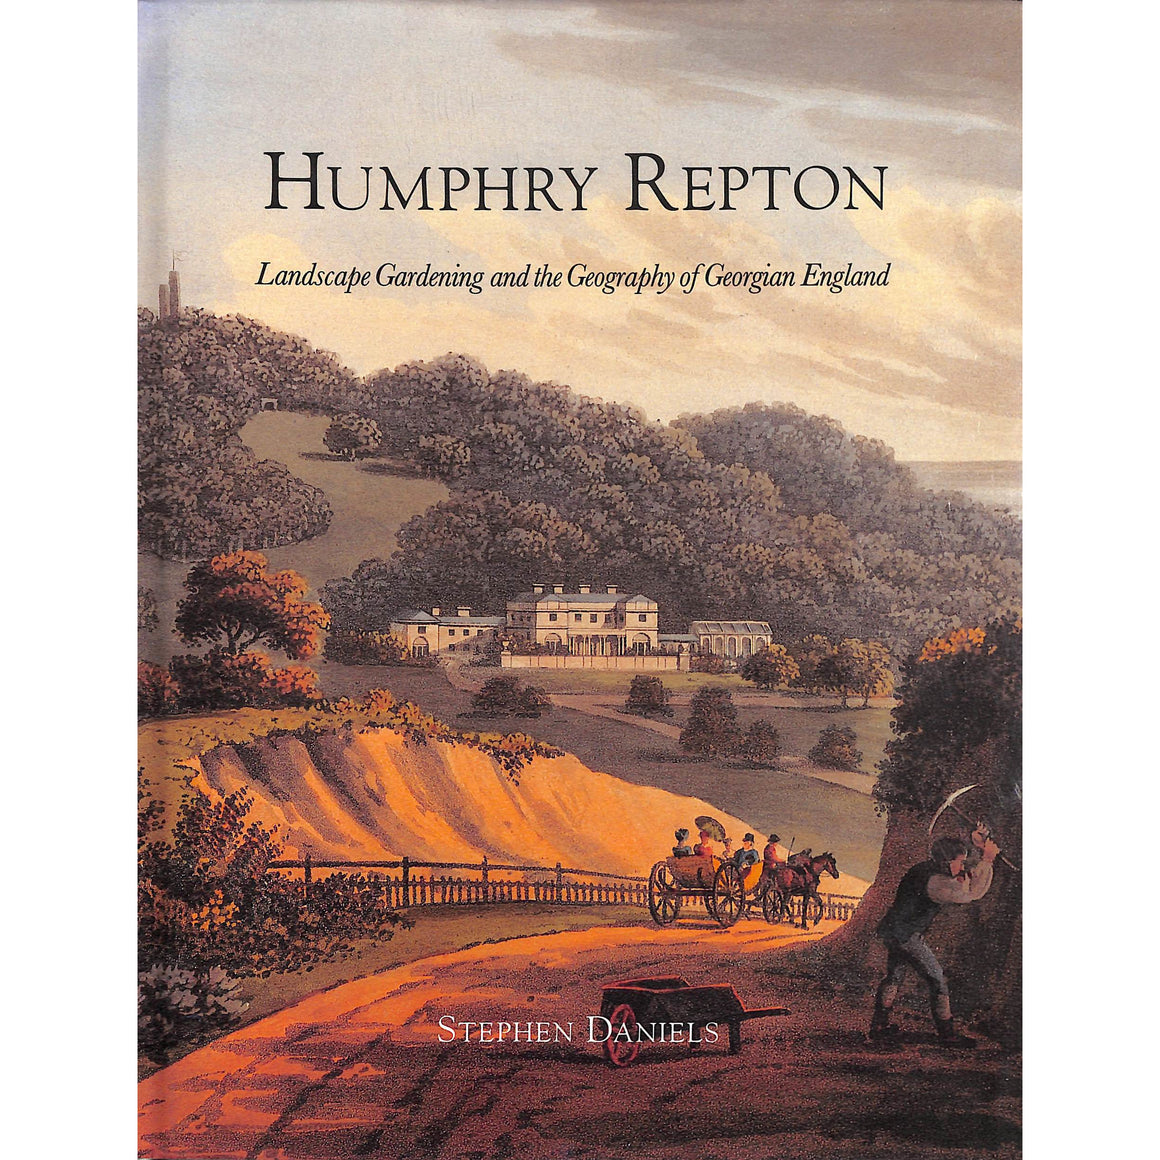 Humphry Repton: Landscape Gardening And The Geography Of Georgian England